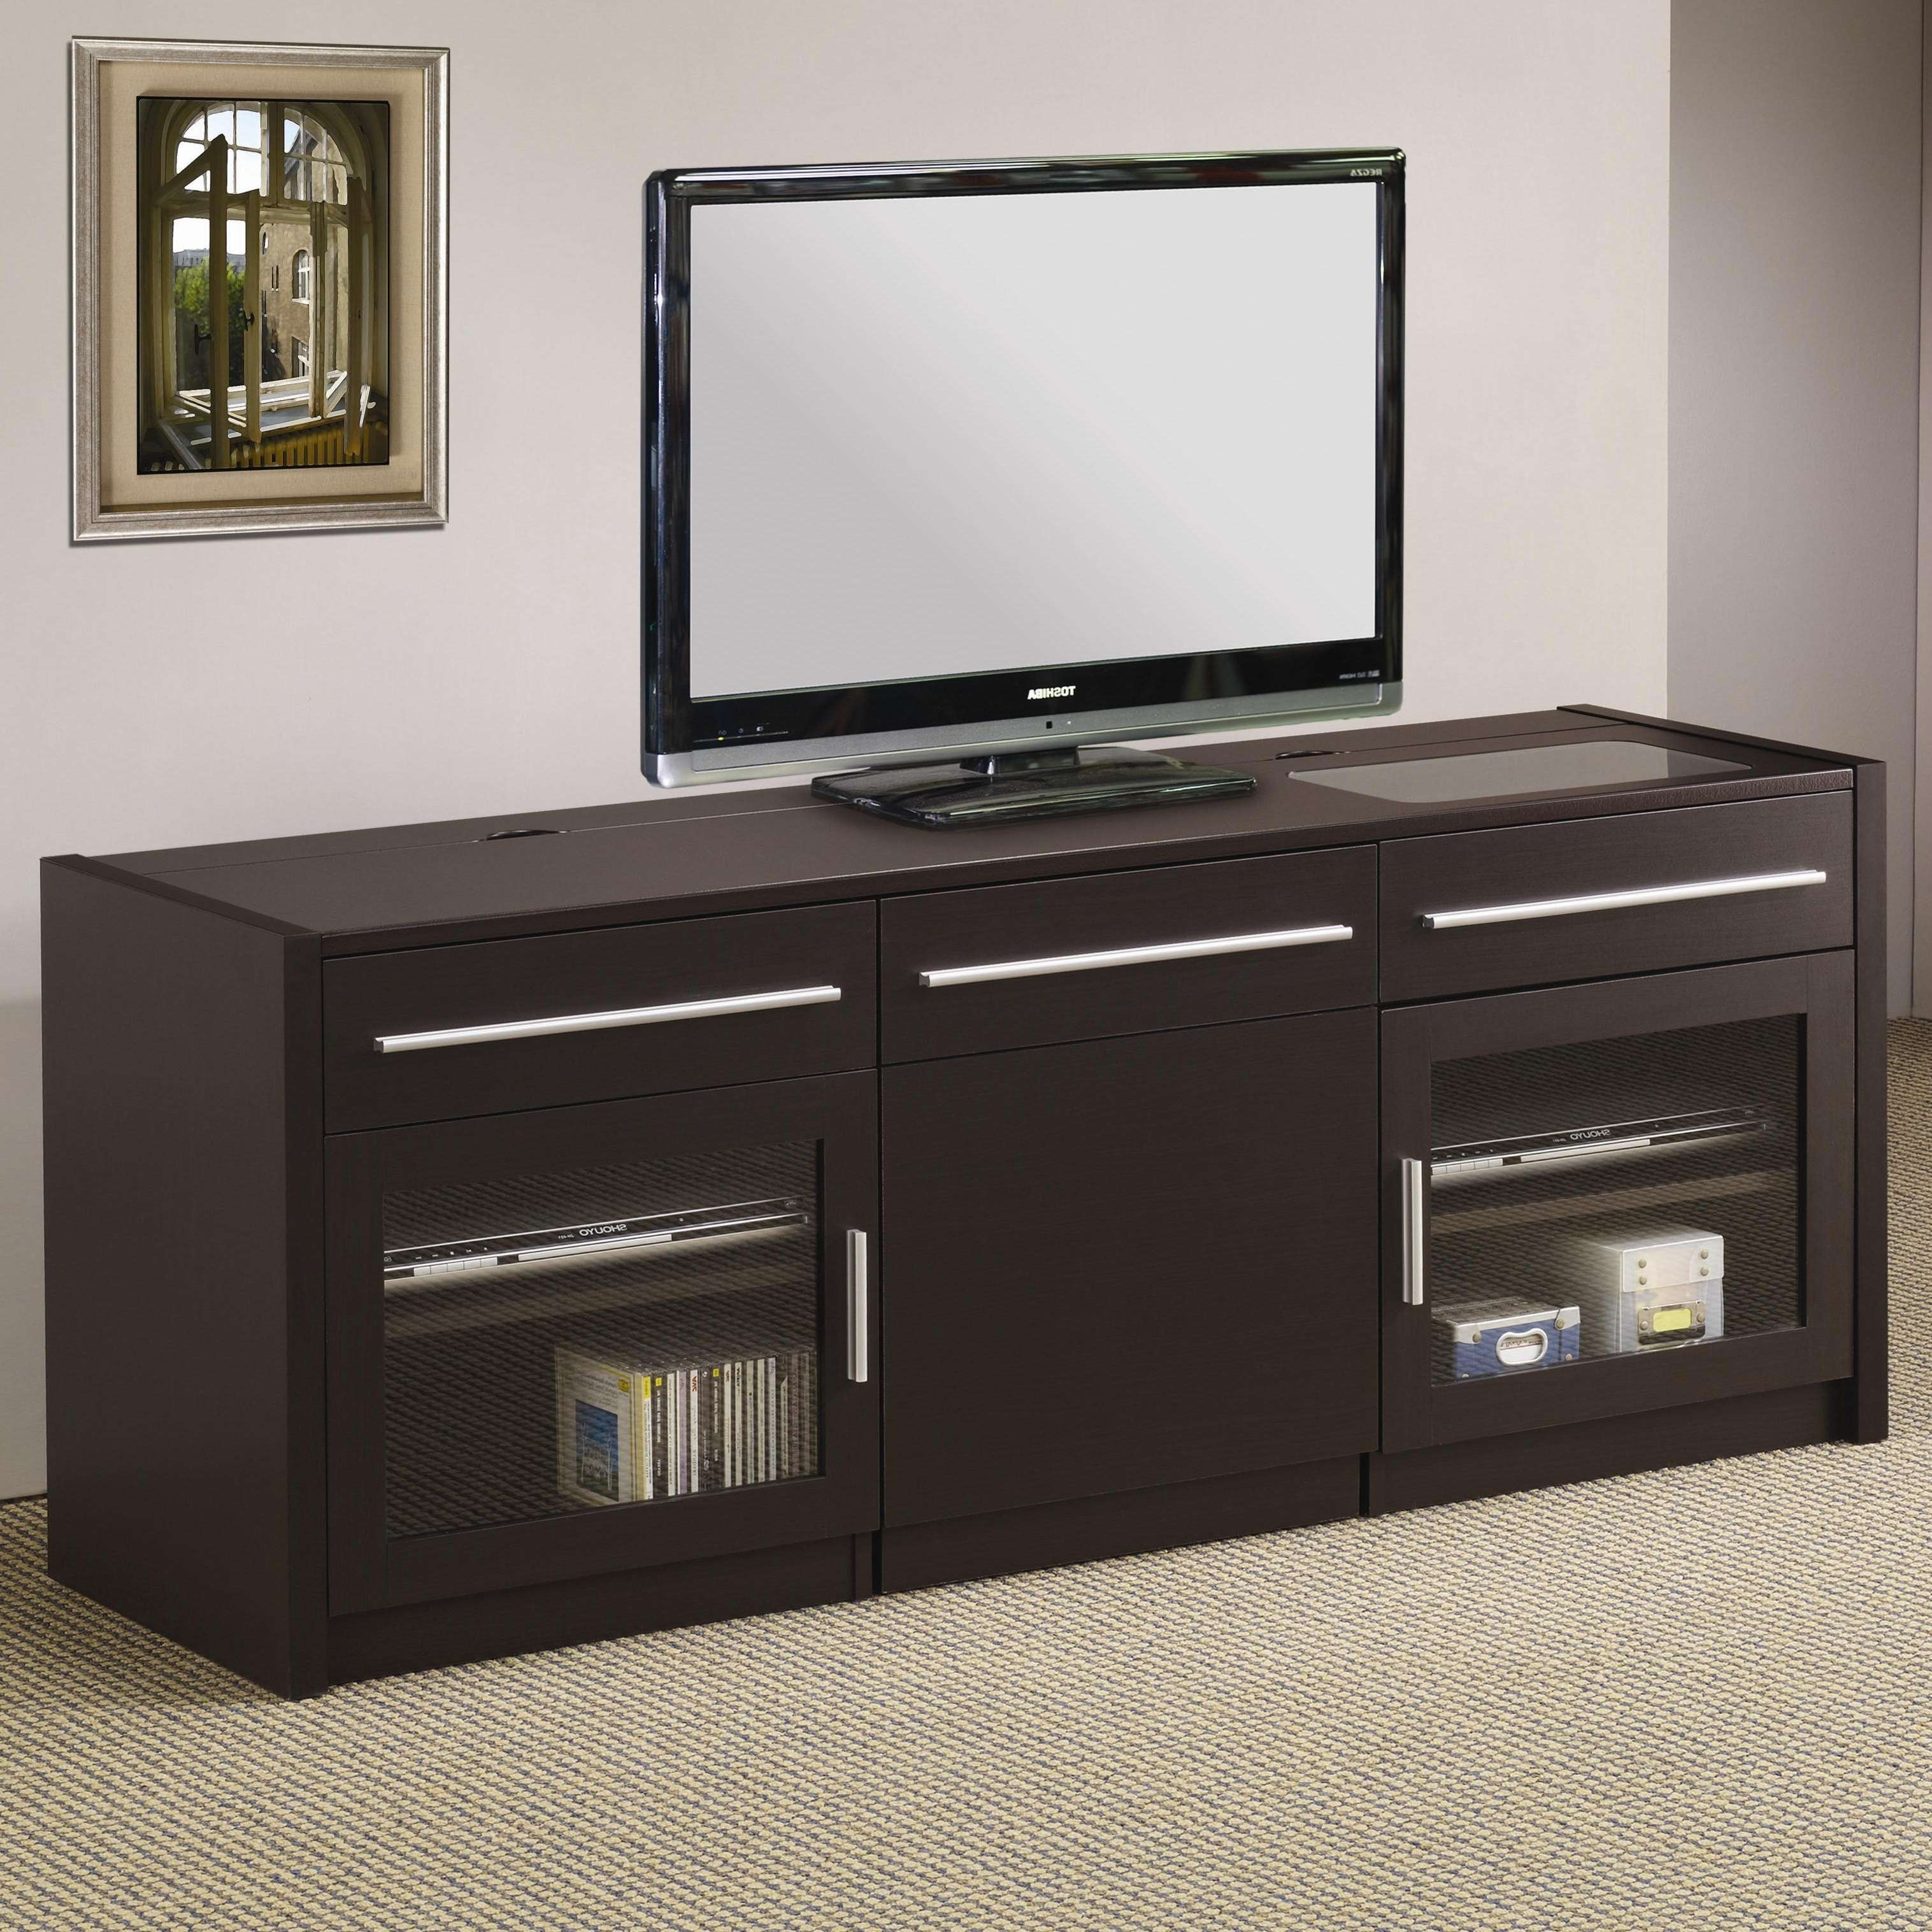 Flat Screen Entertainment Center Ideas Diy Corner Tv Stand Plans With Regard To Tv Stands And Computer Desk Combo (View 15 of 15)